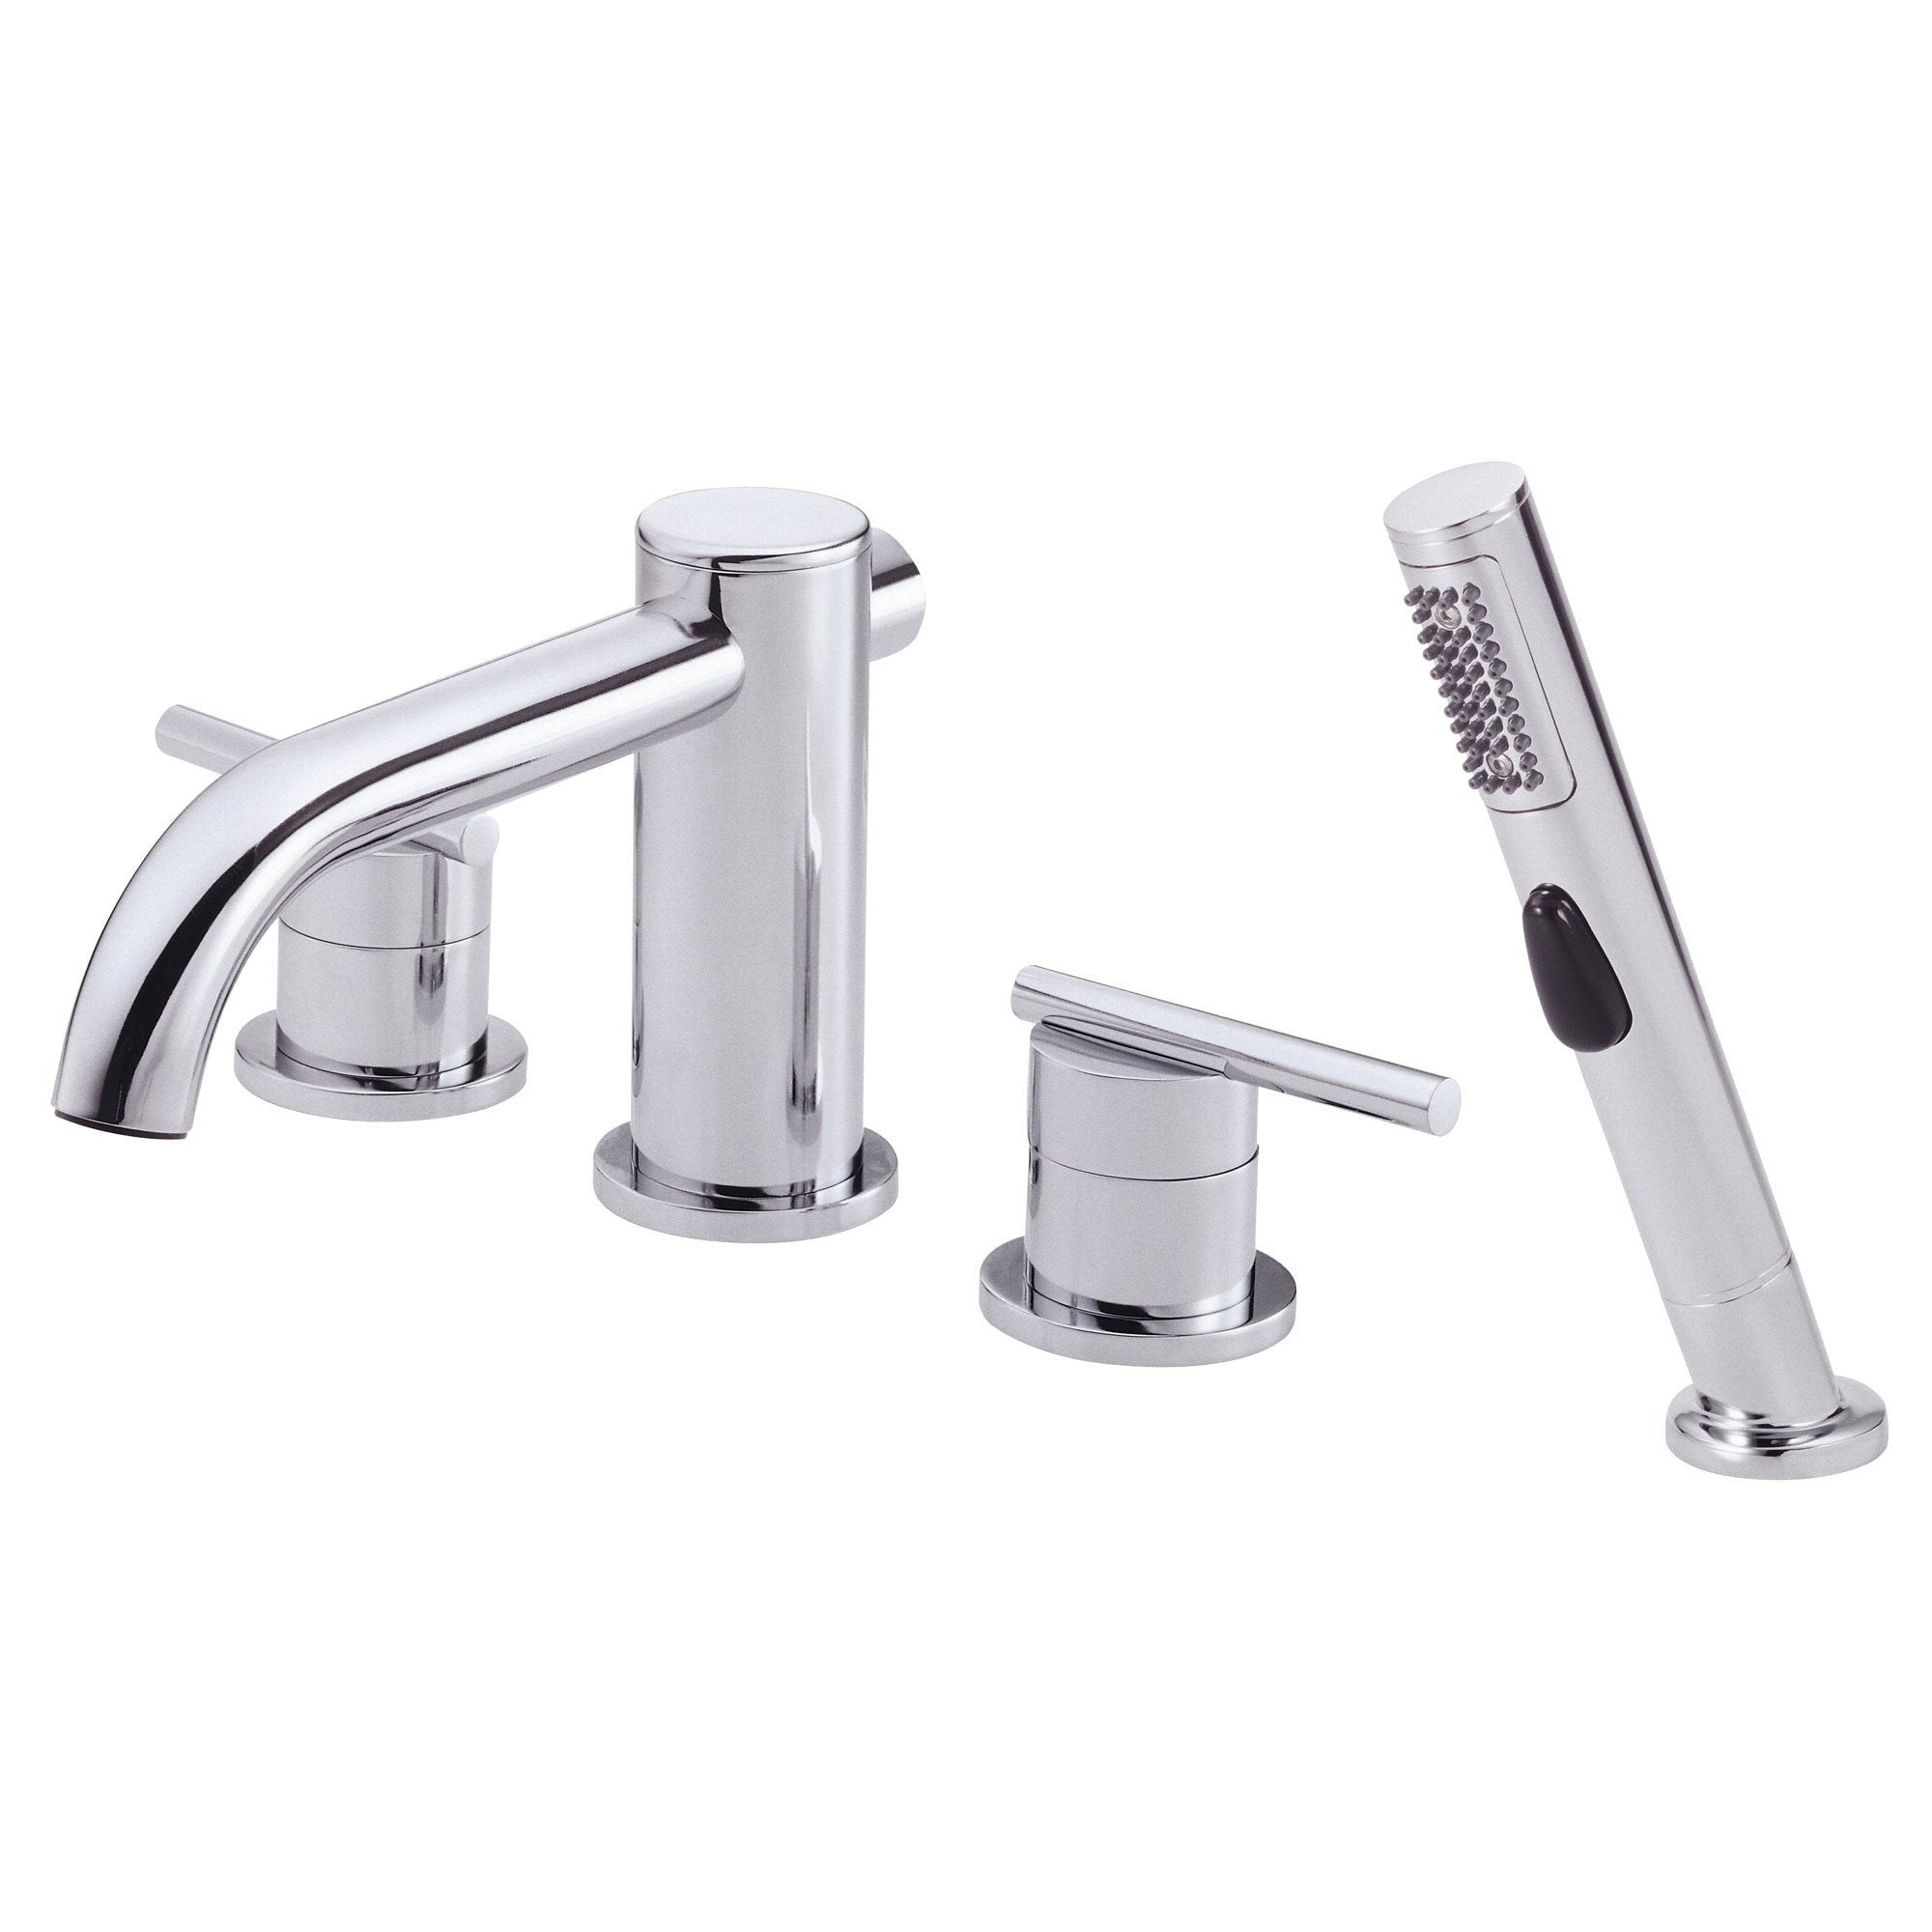 Danze Parma Chrome Modern Widespread Roman Tub Filler Faucet with Hand Shower INCLUDES Rough-in Valve